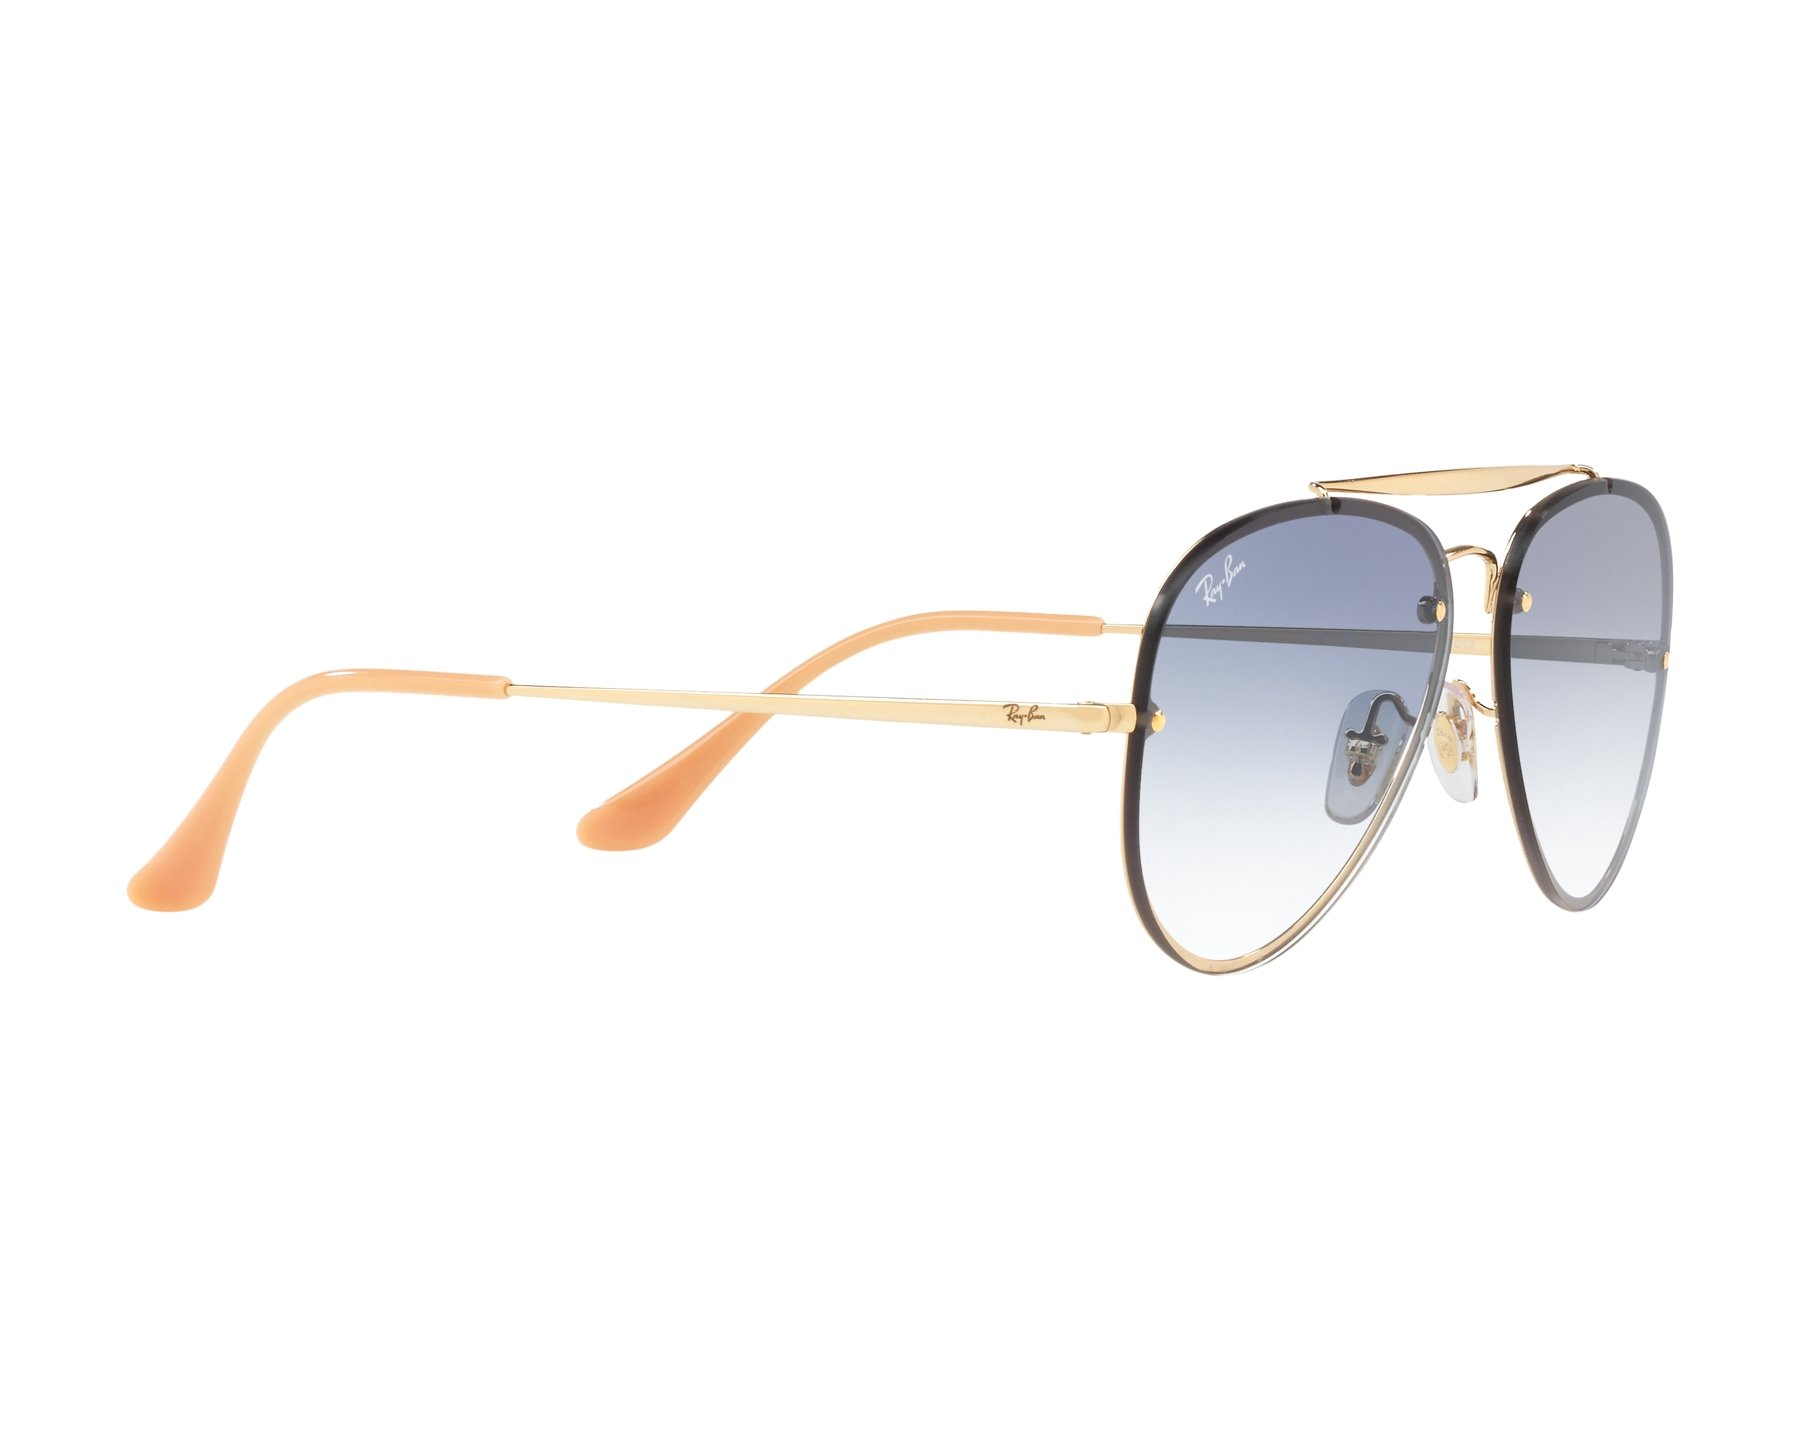 Sunglasses Ray-Ban RB-3584-N 001 19 58-13 Gold 4c9e5e90d4